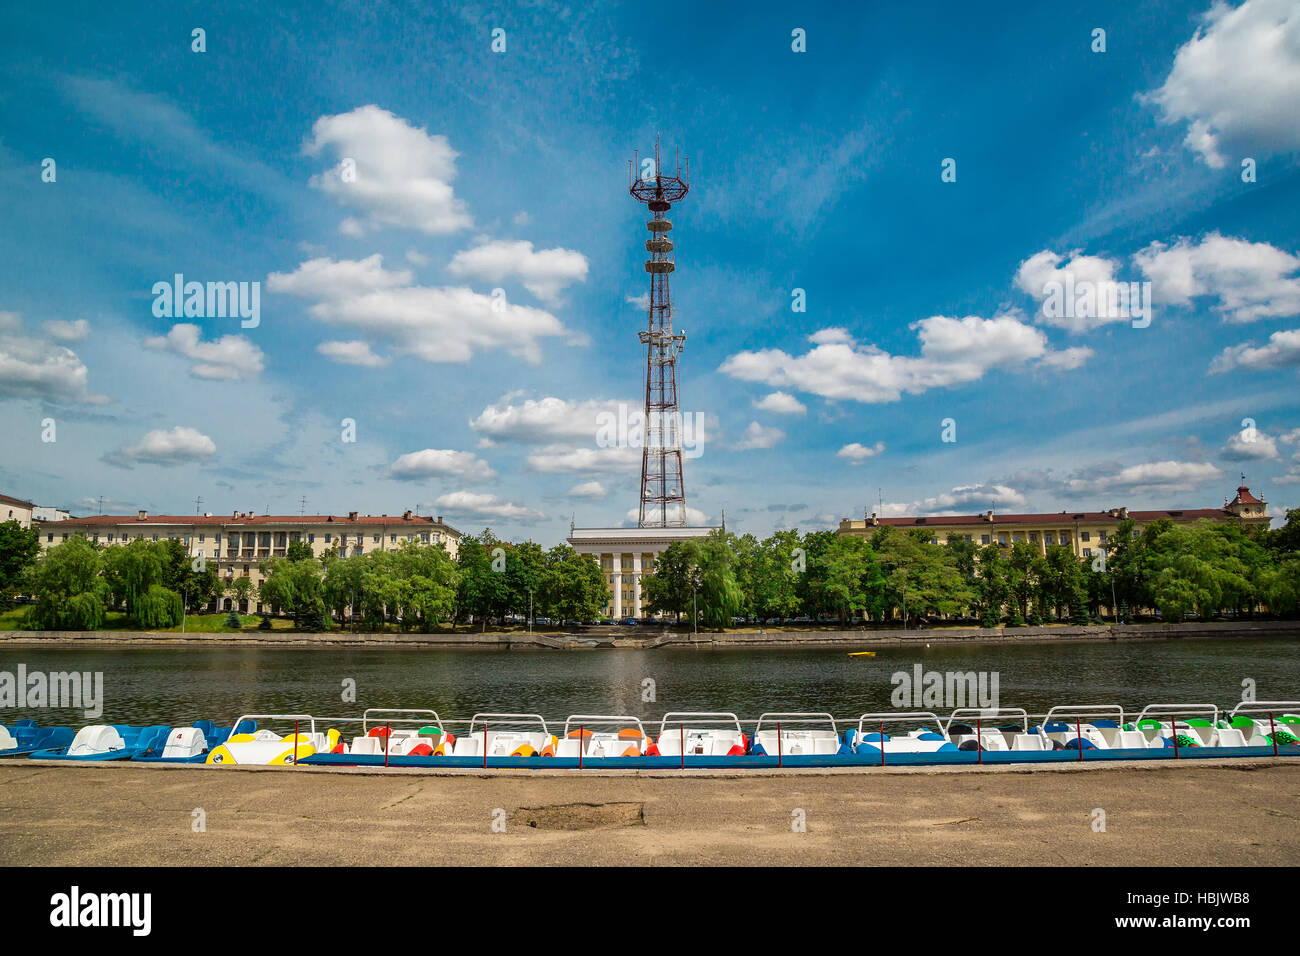 Telecommunication tower in Minsk - Stock Image